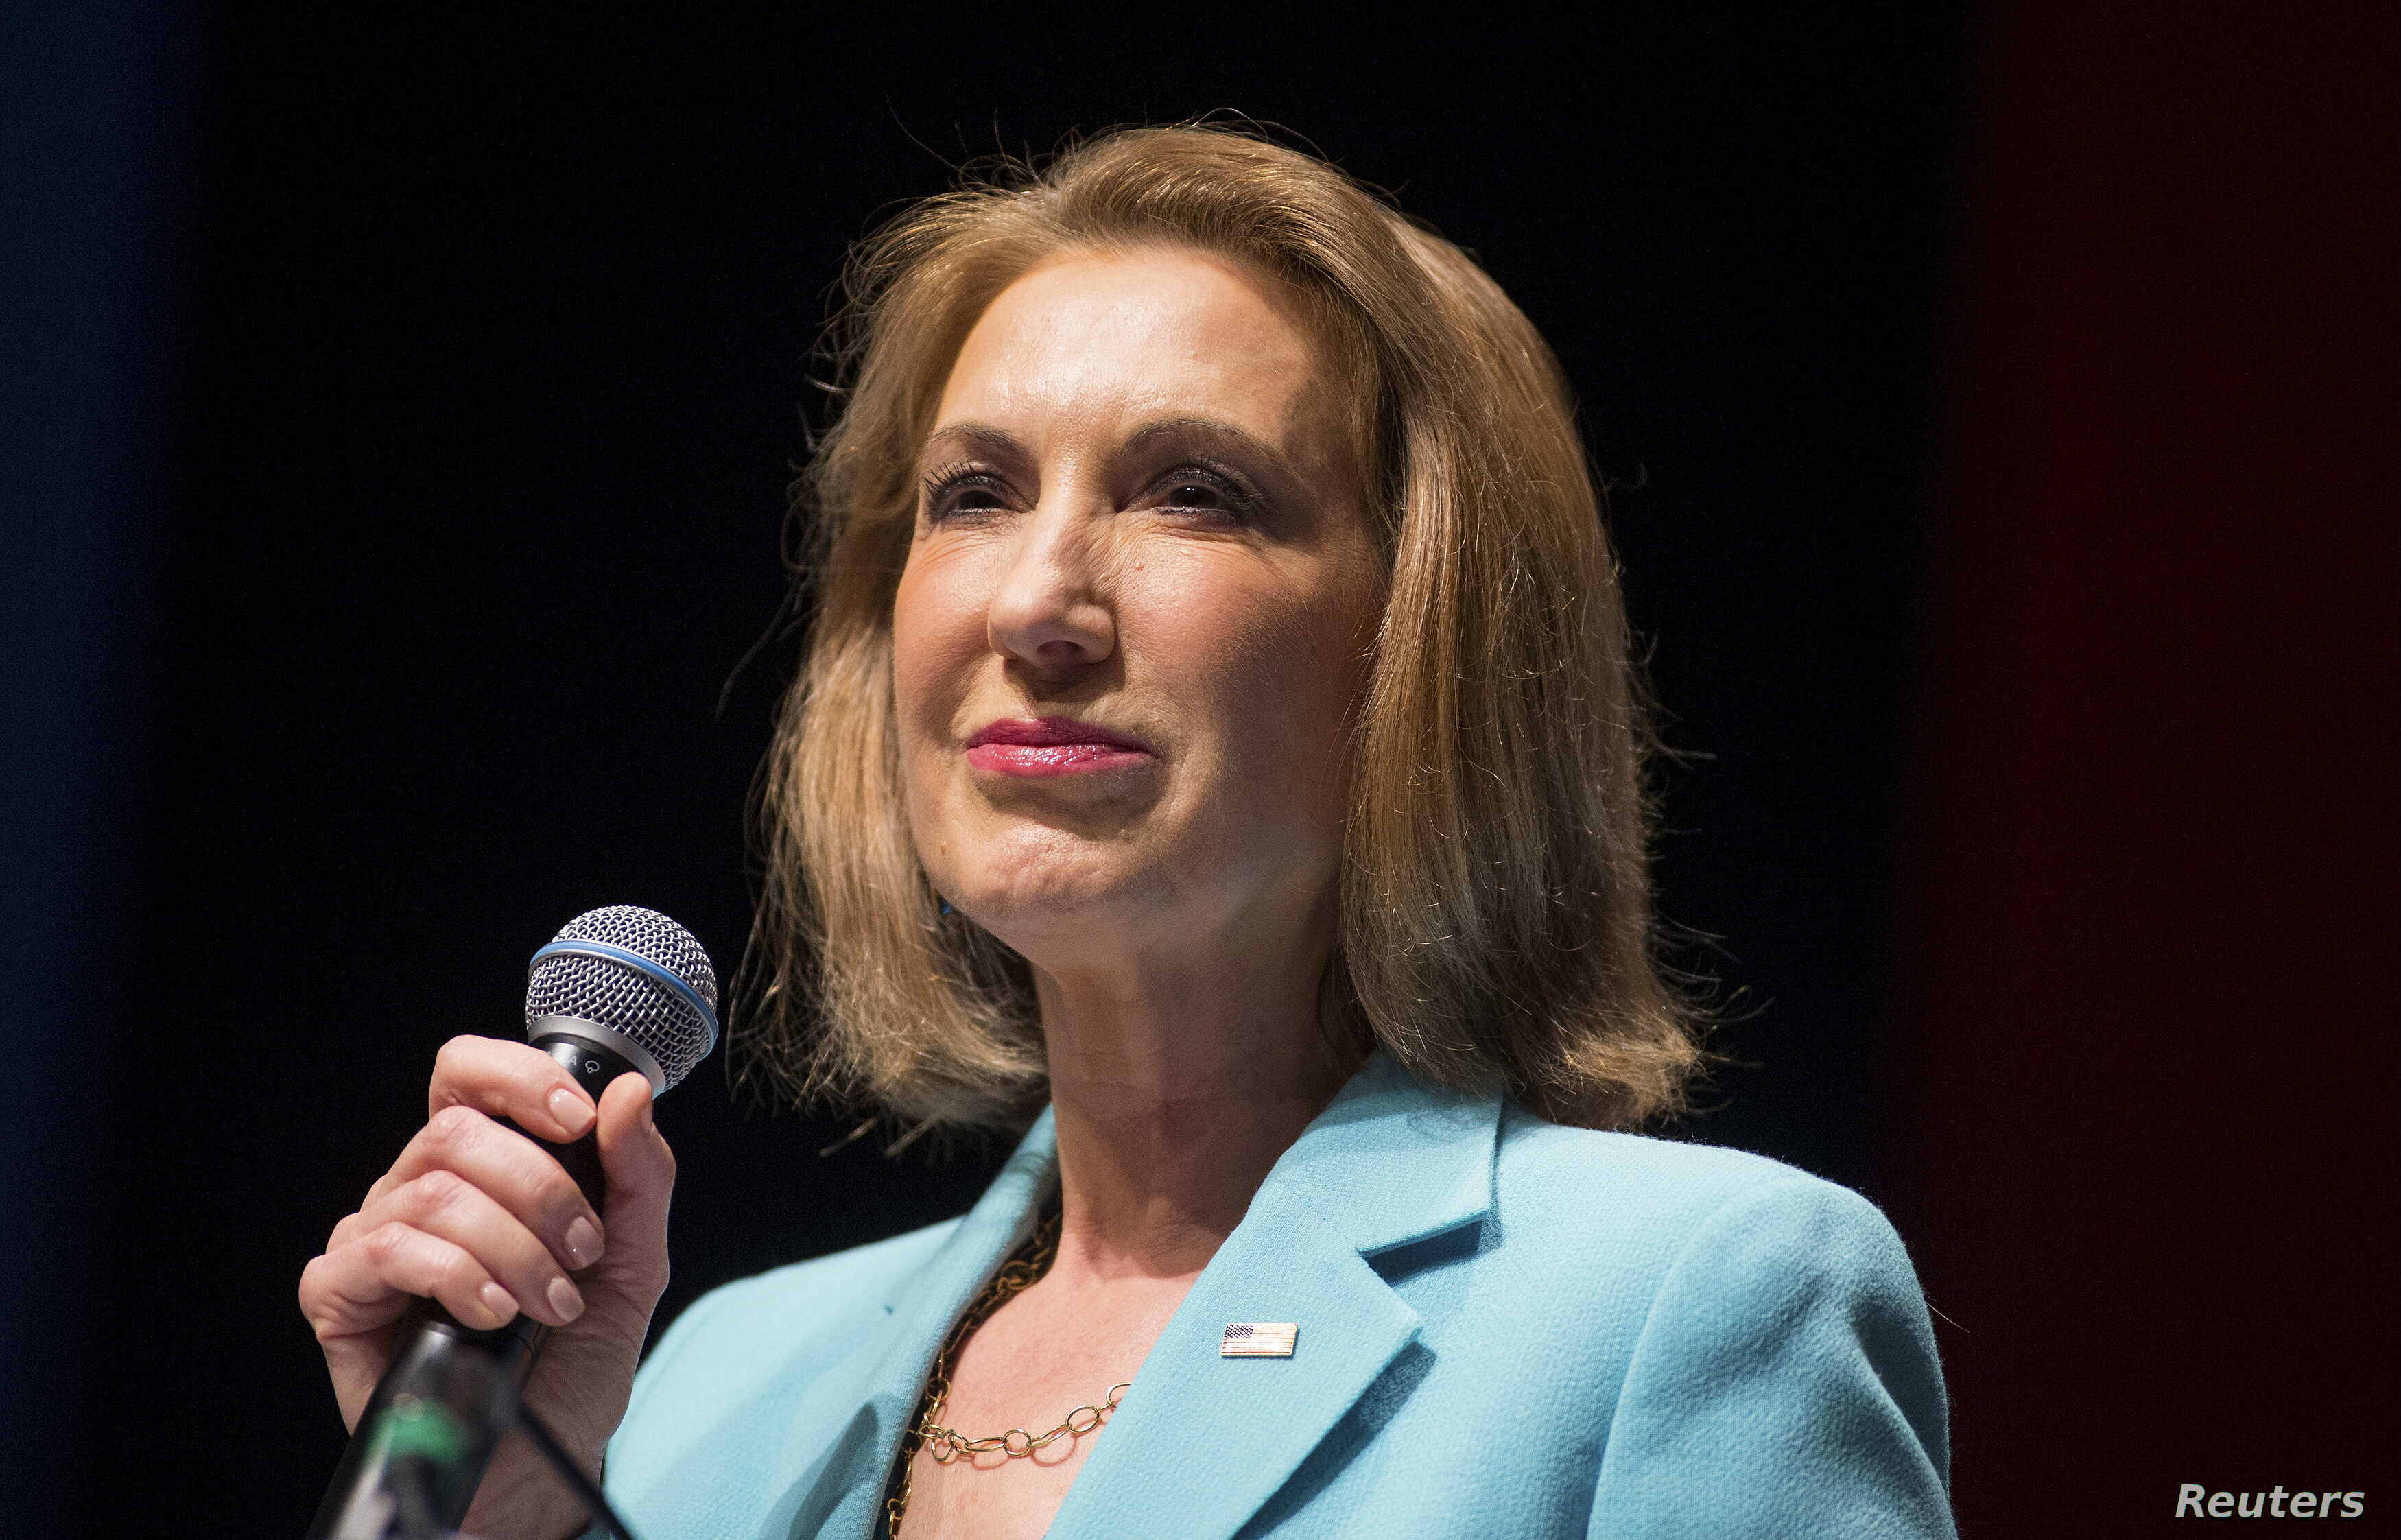 Former Hewlett-Packard Co Chief Executive and Republican U.S. presidential candidate Carly Fiorina speaks during the Freedom Summit in Greenville, South Carolina, May 9, 2015.